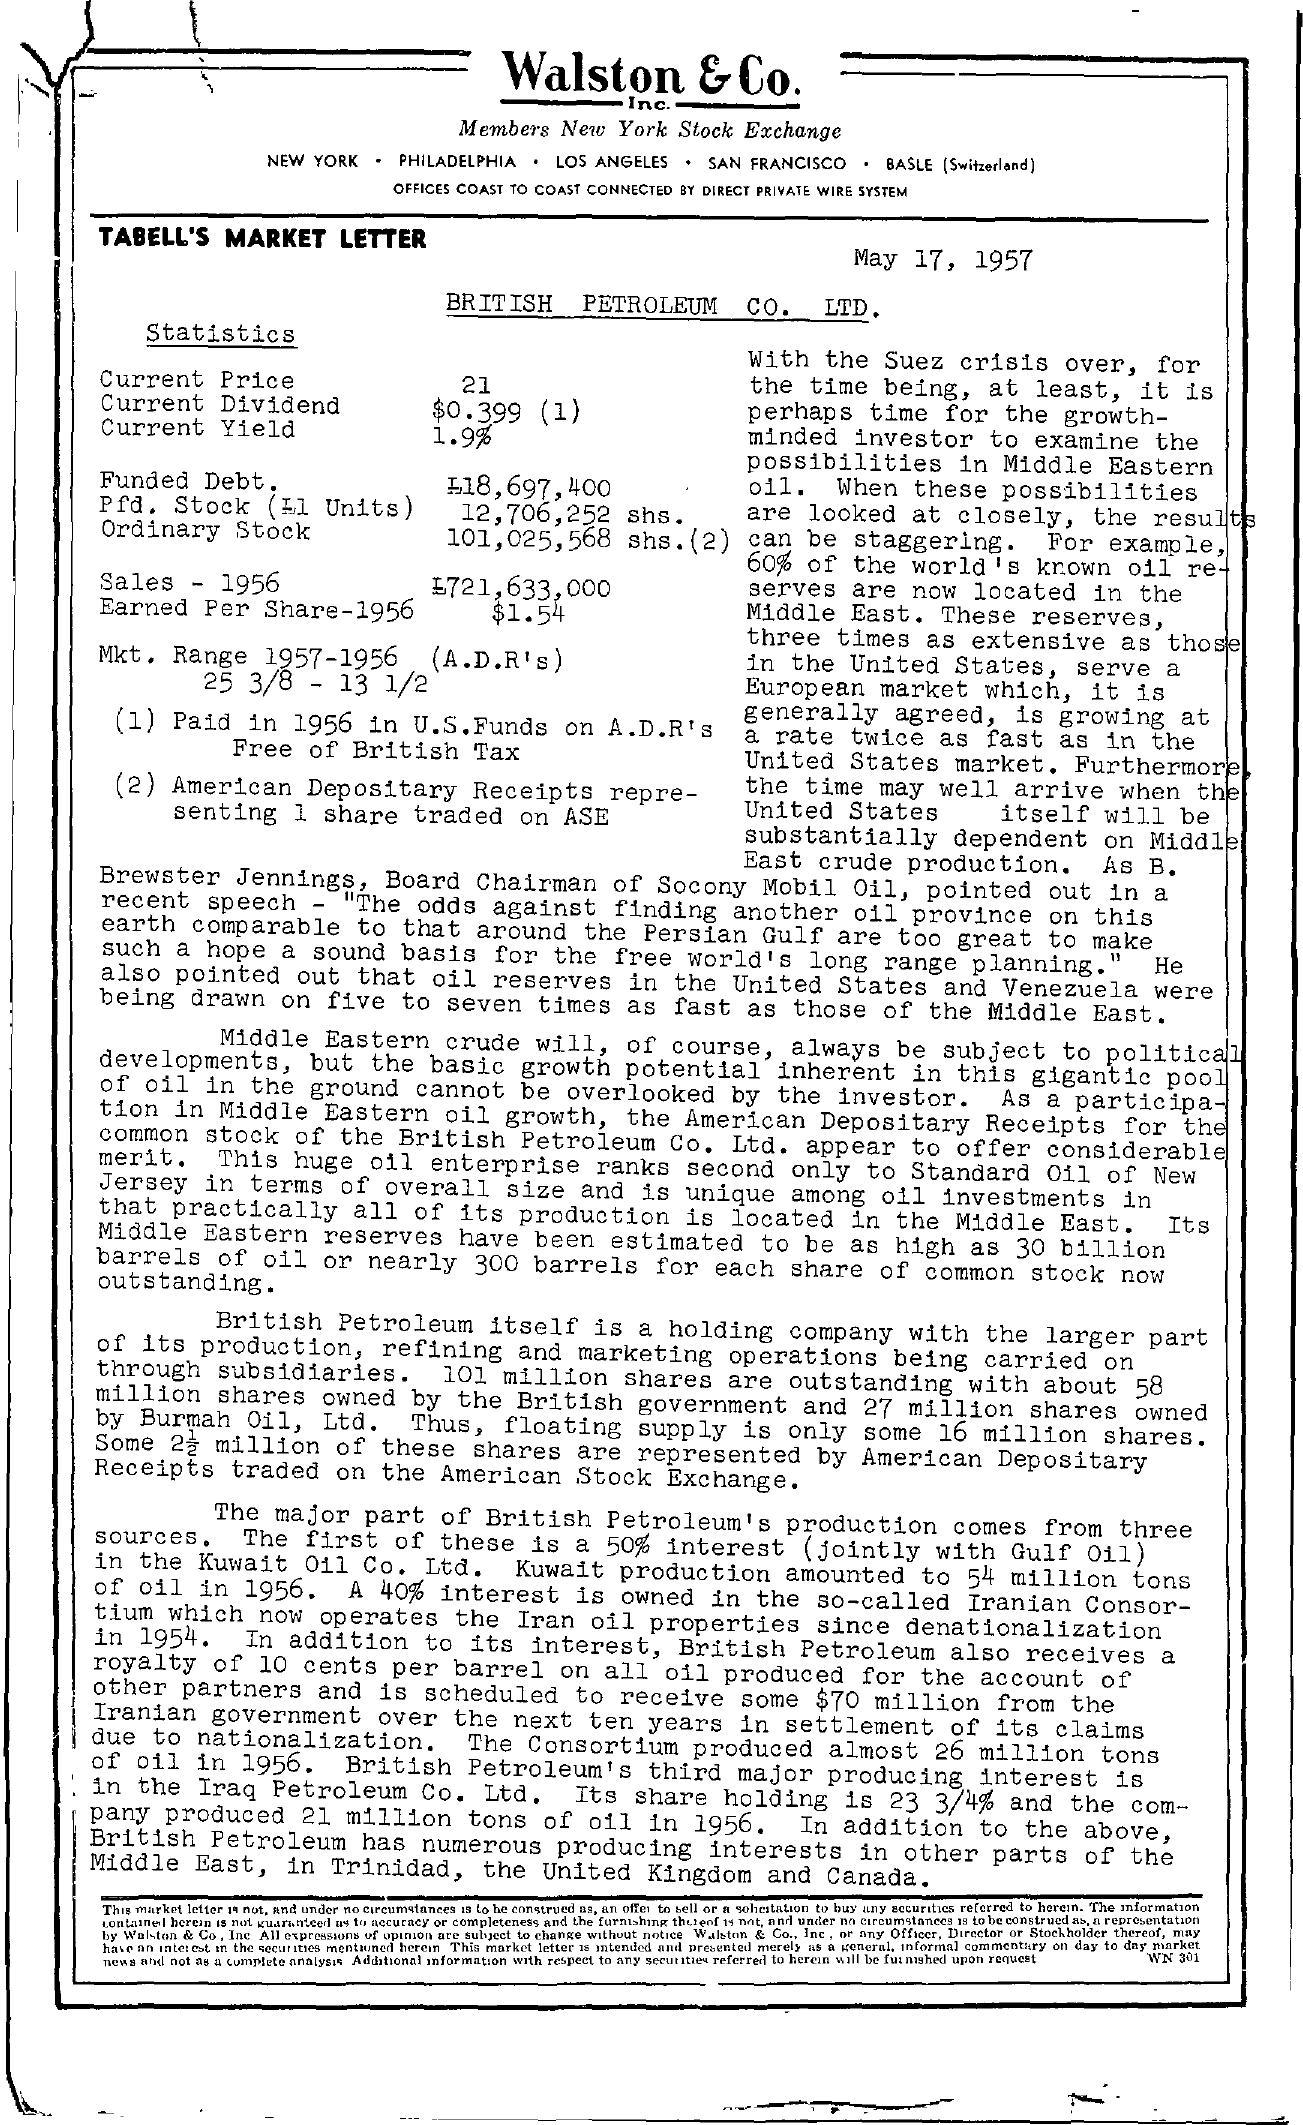 Tabell's Market Letter - May 17, 1957 page 1